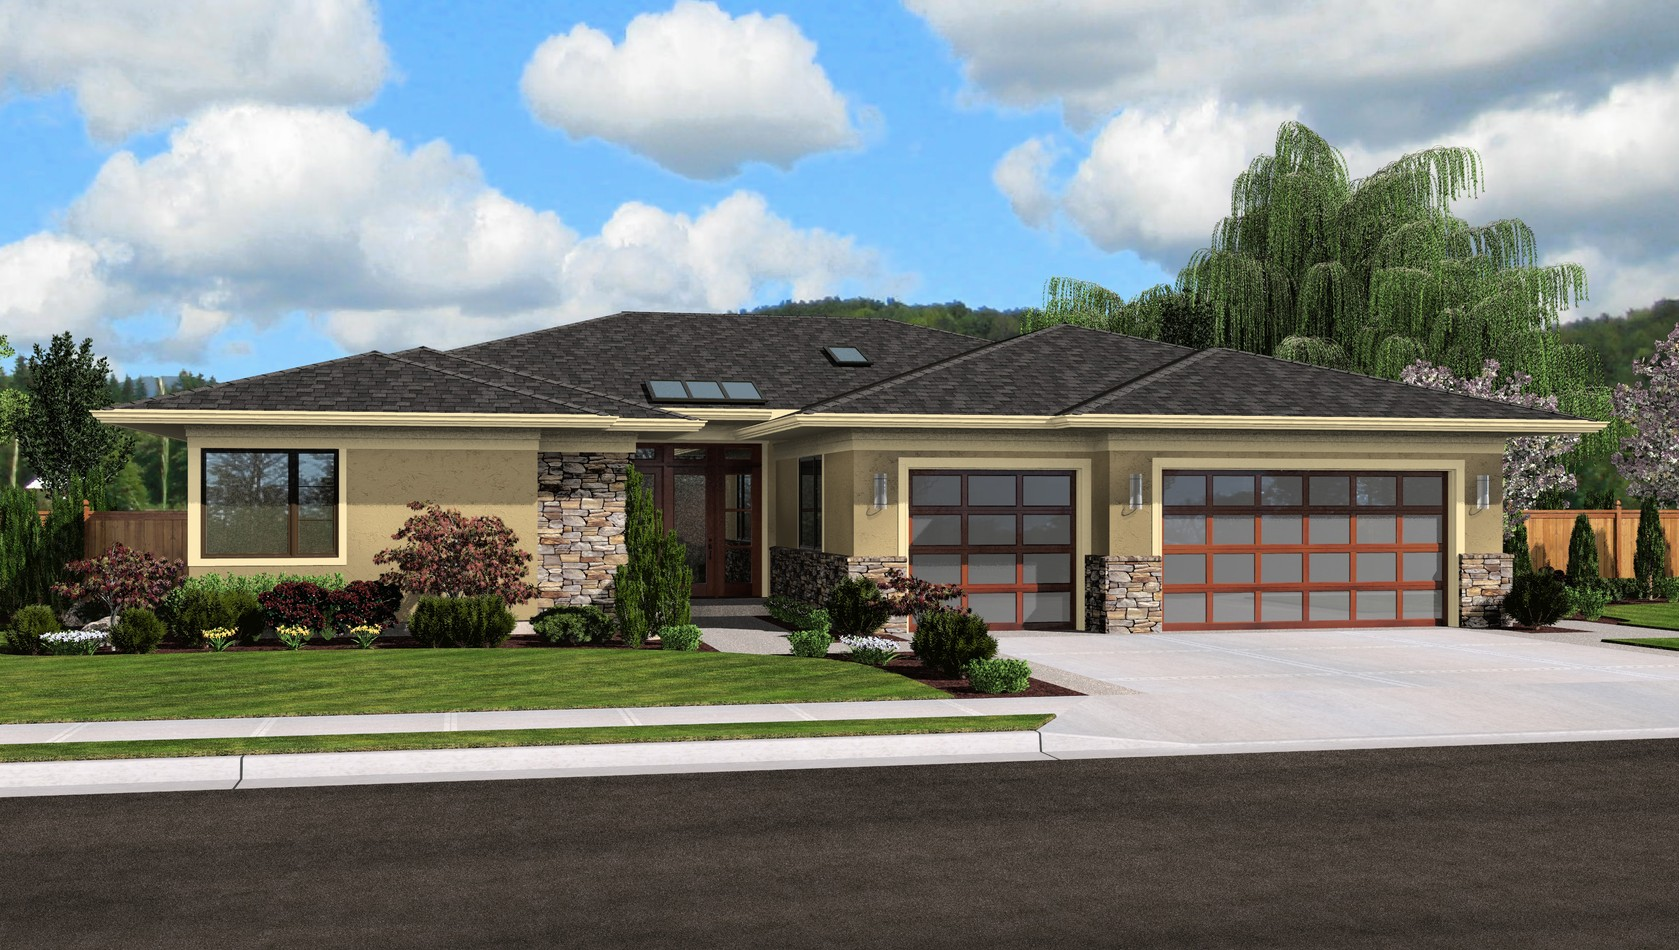 Contemporary House Plan 1245 The Riverside: 2334 Sqft, 4 ...